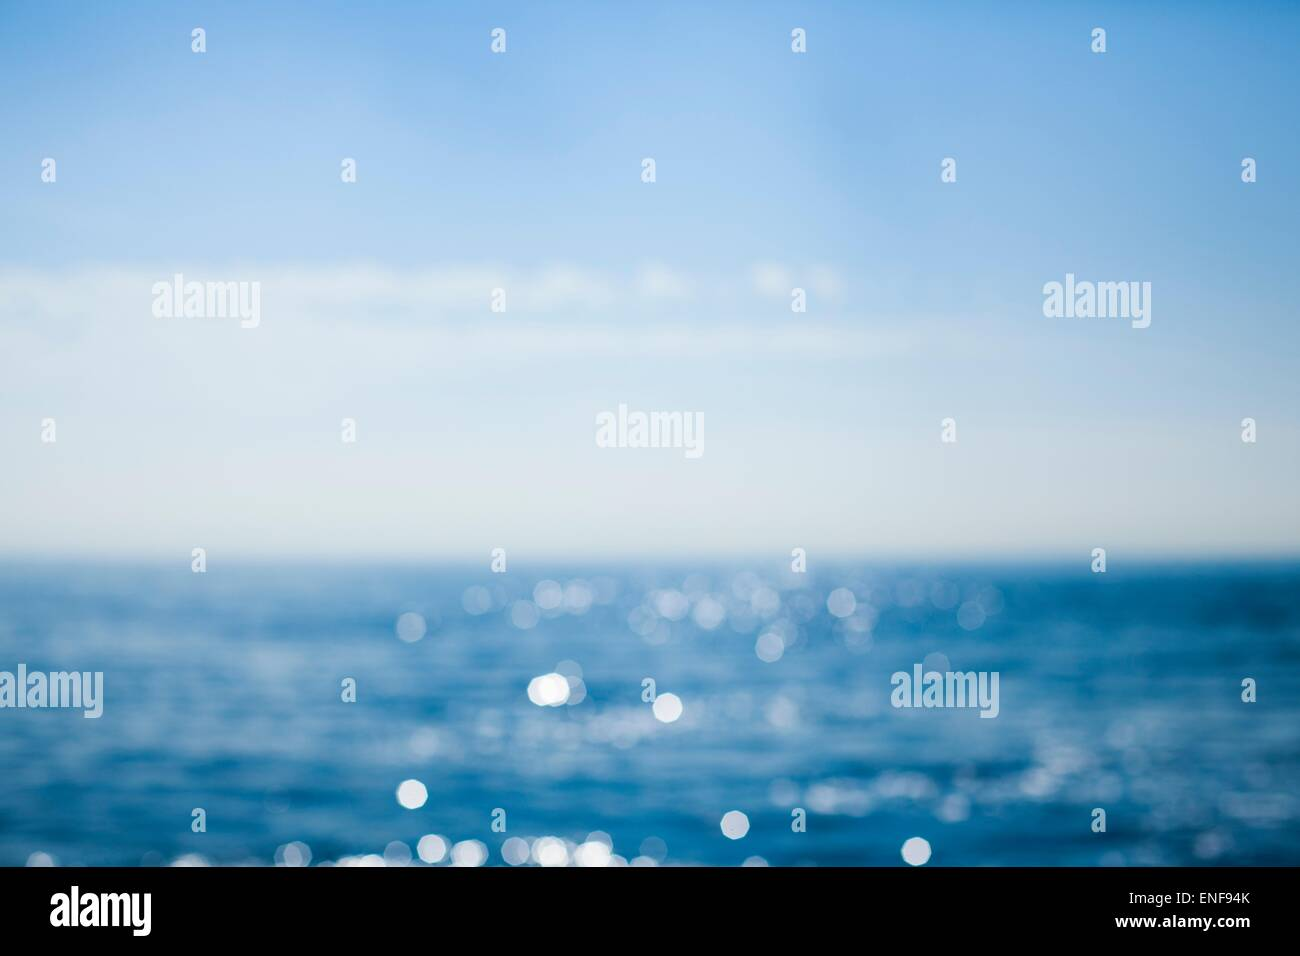 Blurry photo of the sea and sky - Stock Image